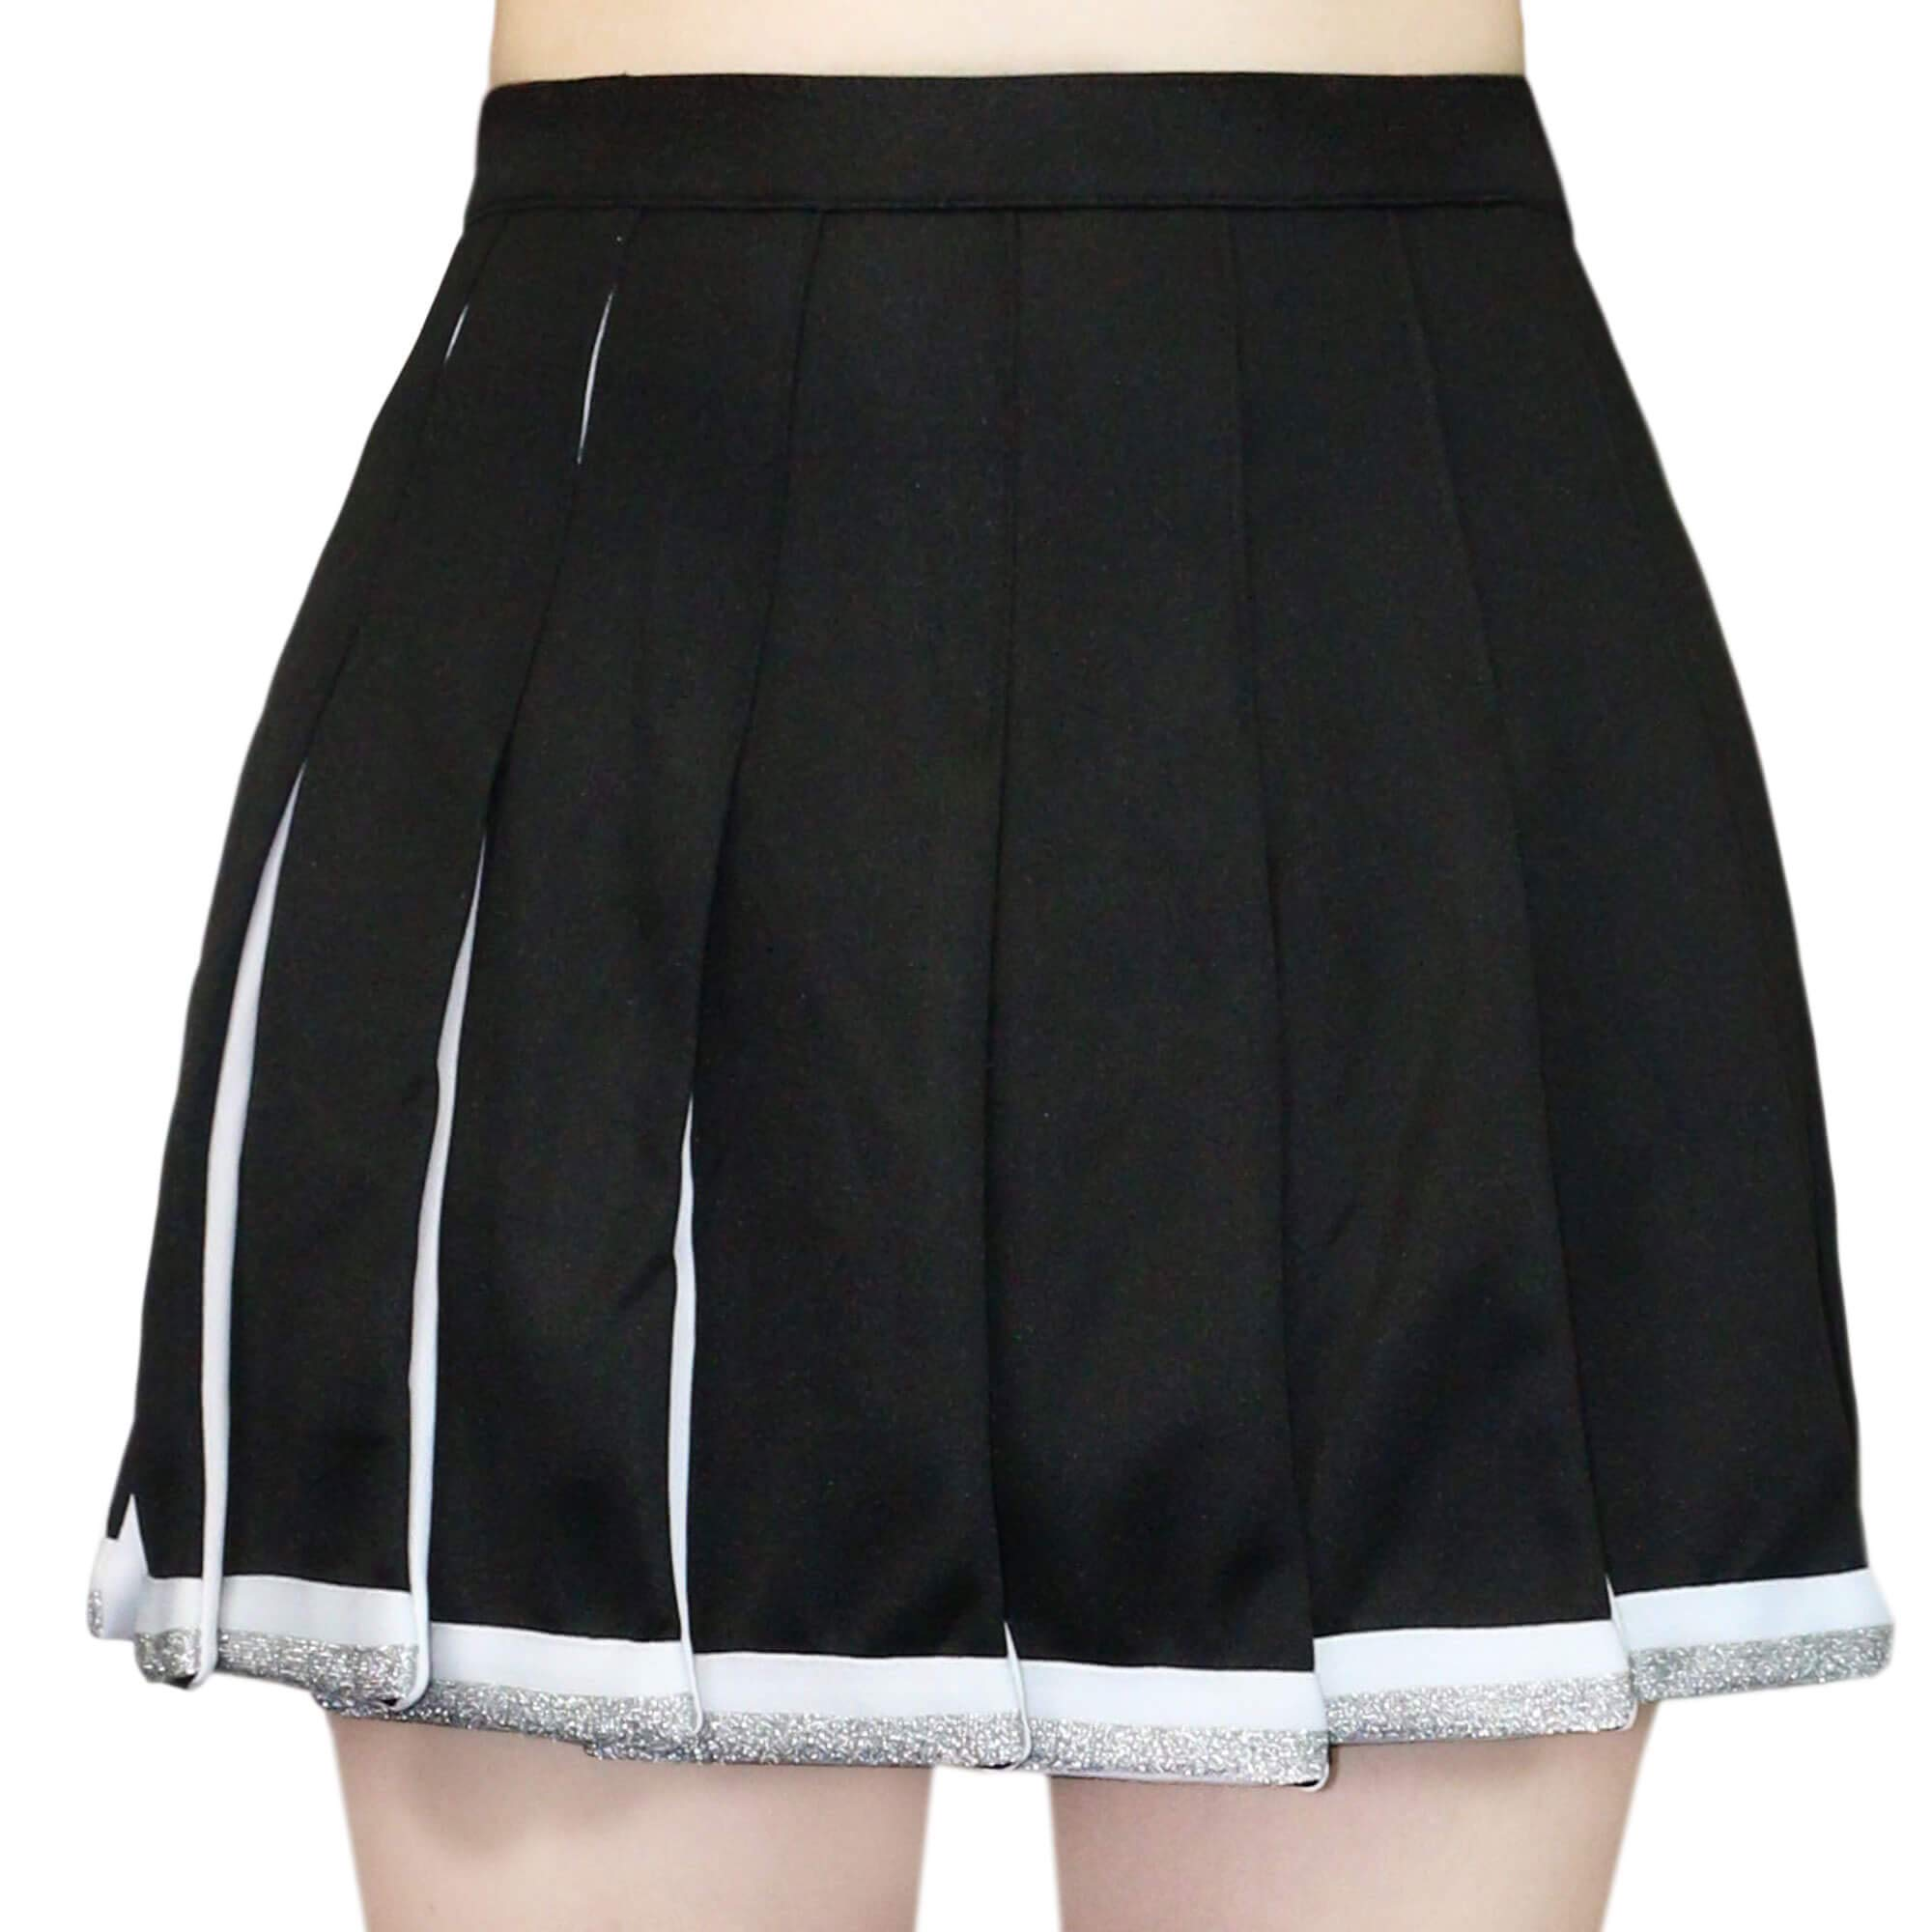 Danzcue Adult Cheerleading Pleated Skirt, Black-White, X-Small by Danzcue